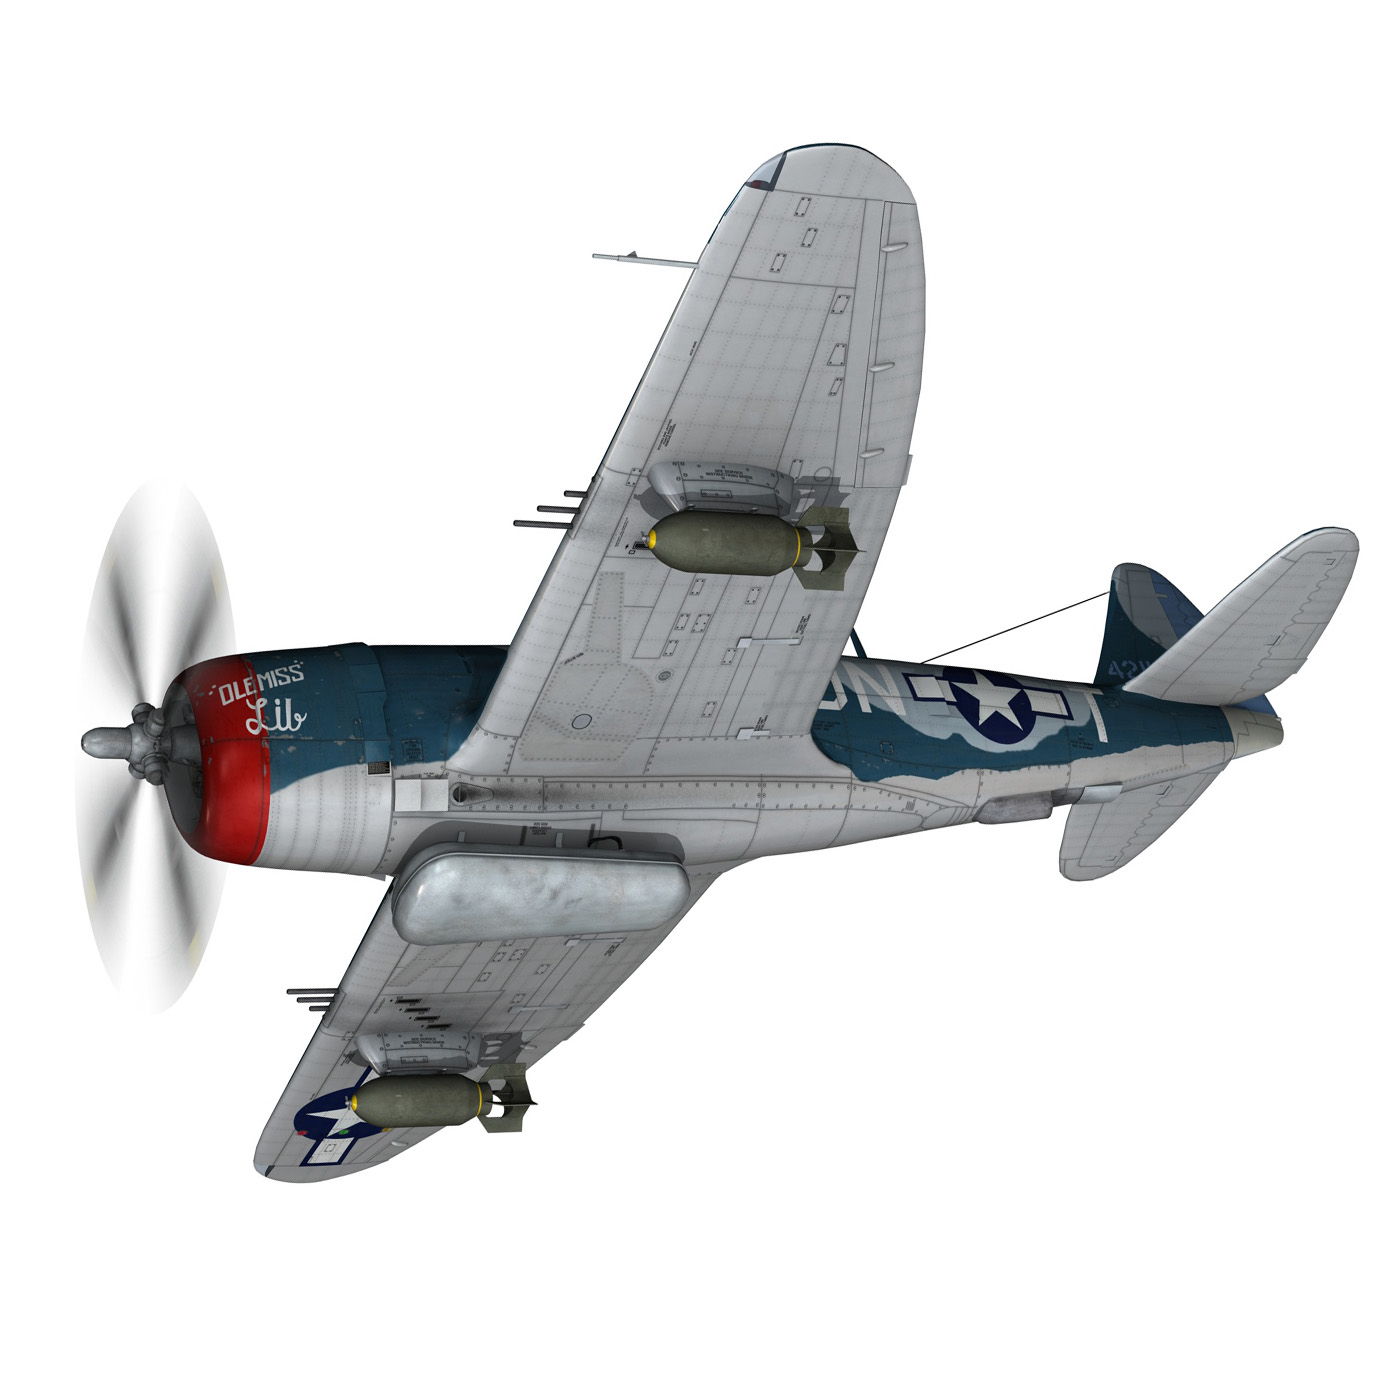 republic p-47 thunderbolt – ole miss lib 3d model fbx c4d lwo obj 274276